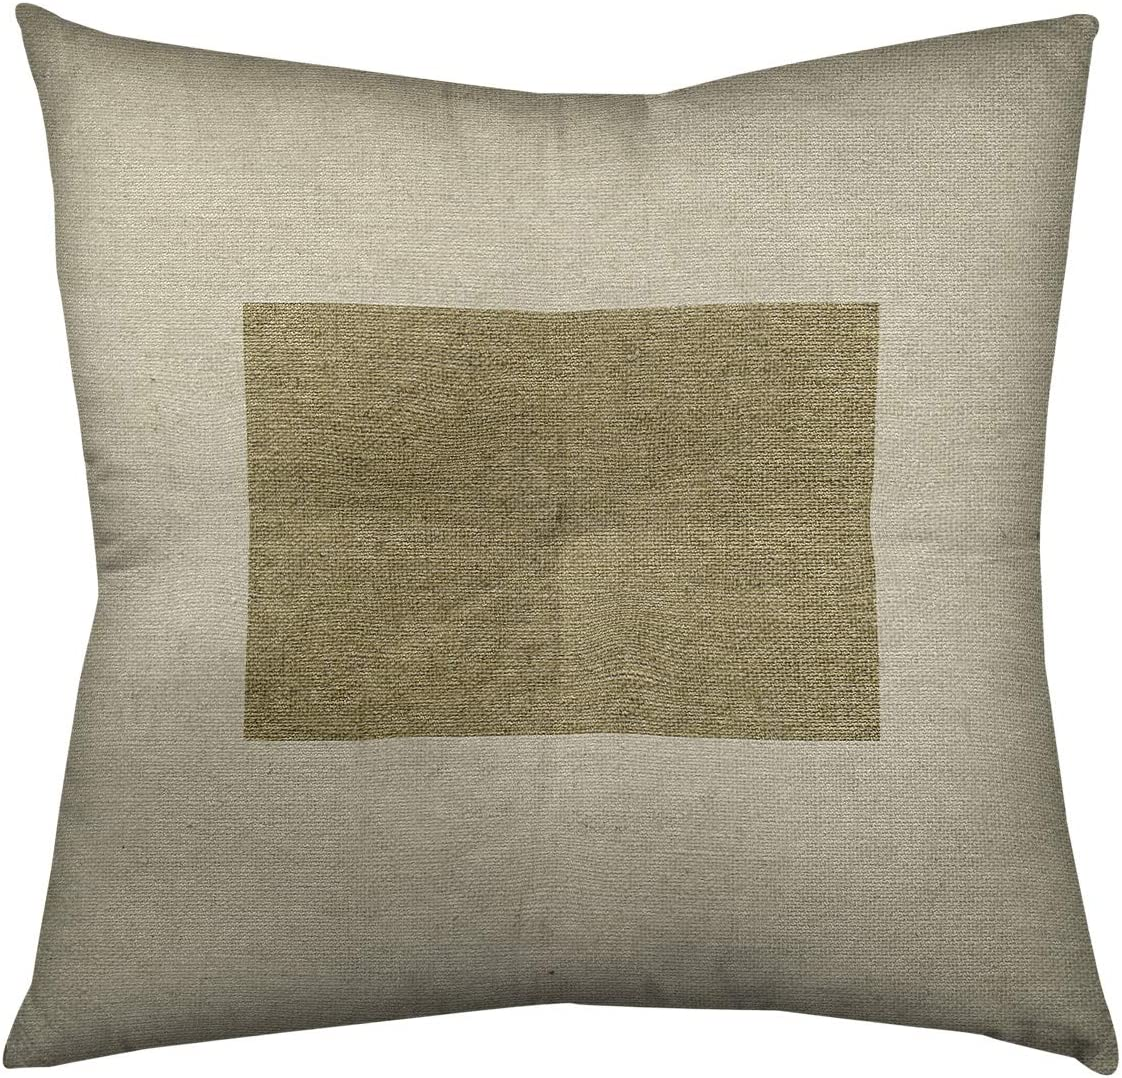 Updated Fabric ArtVerse Katelyn Smith Wyoming Outline 14 x 14 Pillow-Faux Linen Double Sided Print with Concealed Zipper /& Insert